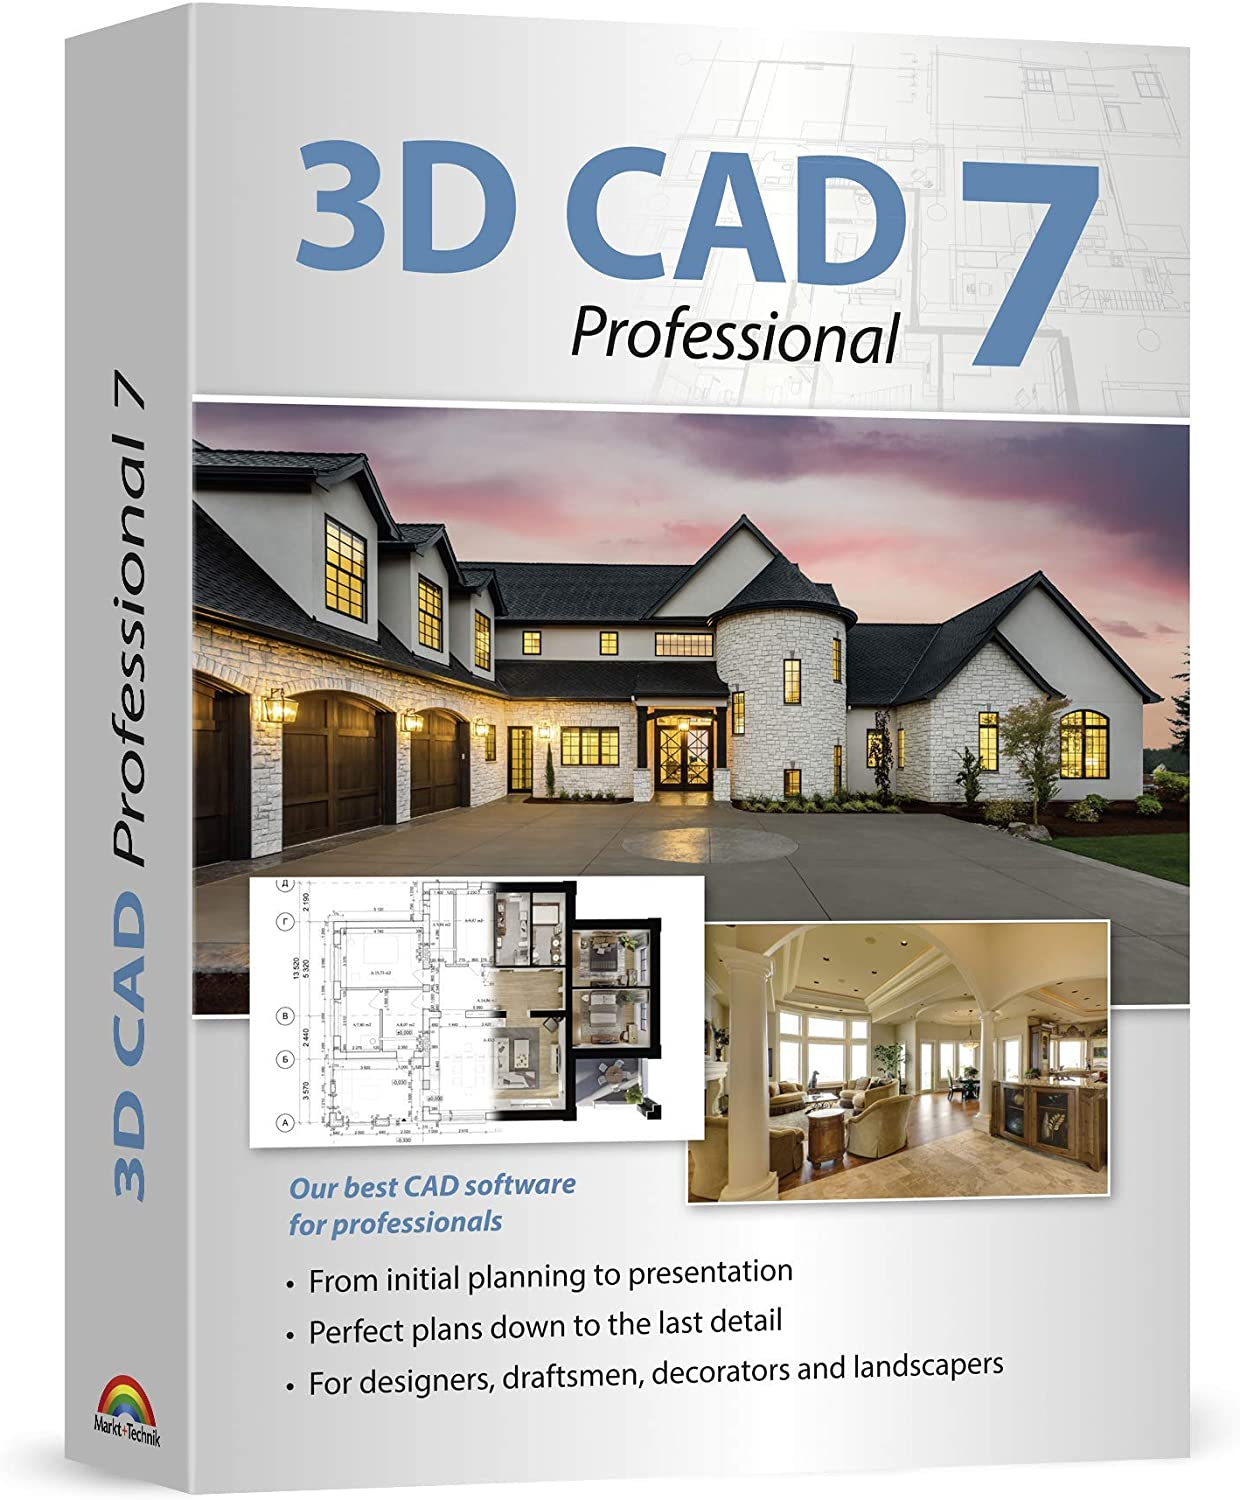 3D CAD 7 Professional - Plan & design buildings from initial rough sketches to the finished blueprints - CAD and architecture software